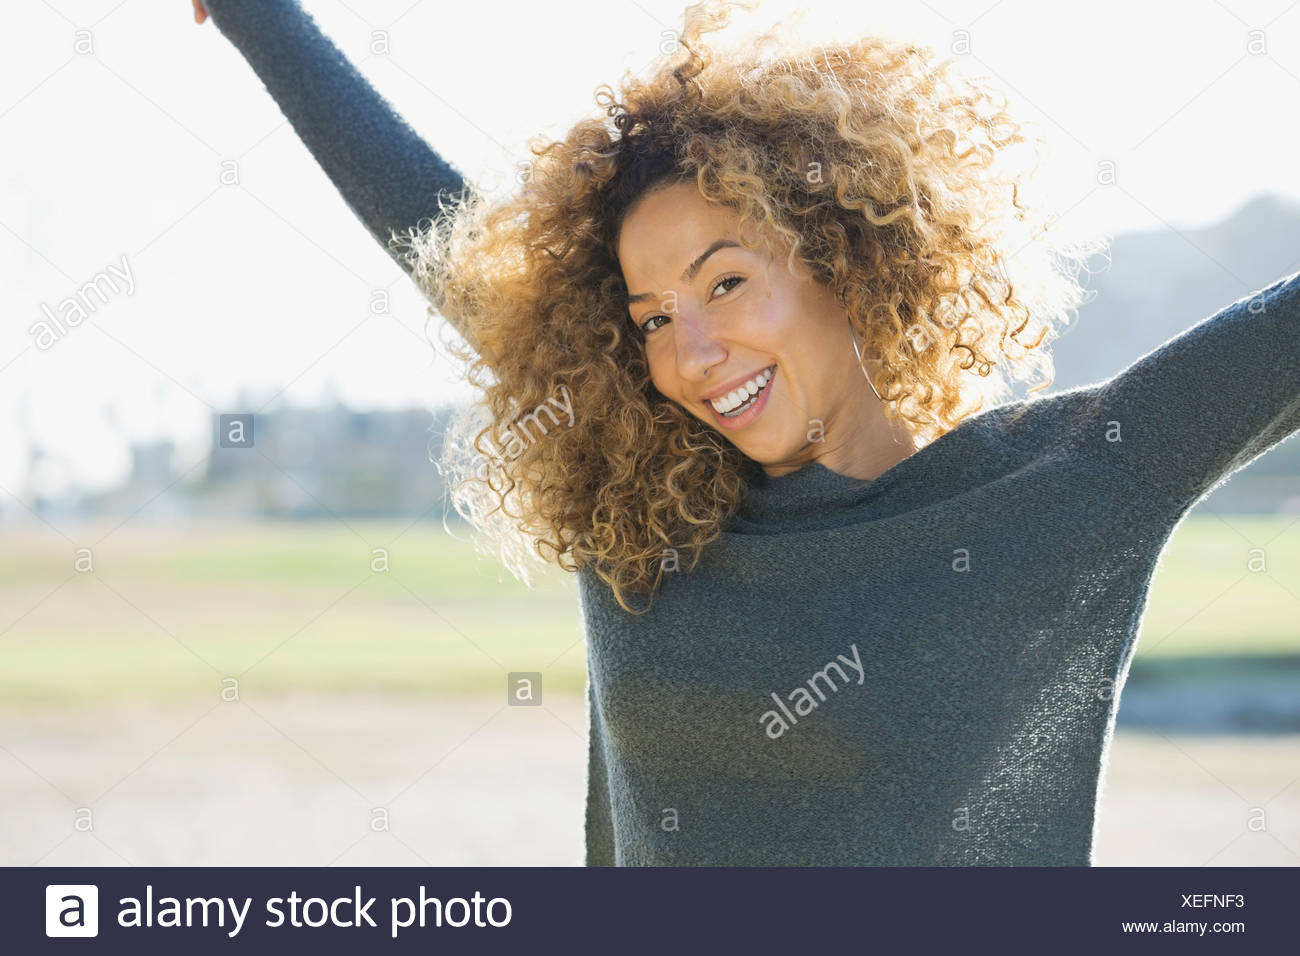 Portrait of woman with arms raised outdoors - Stock Image